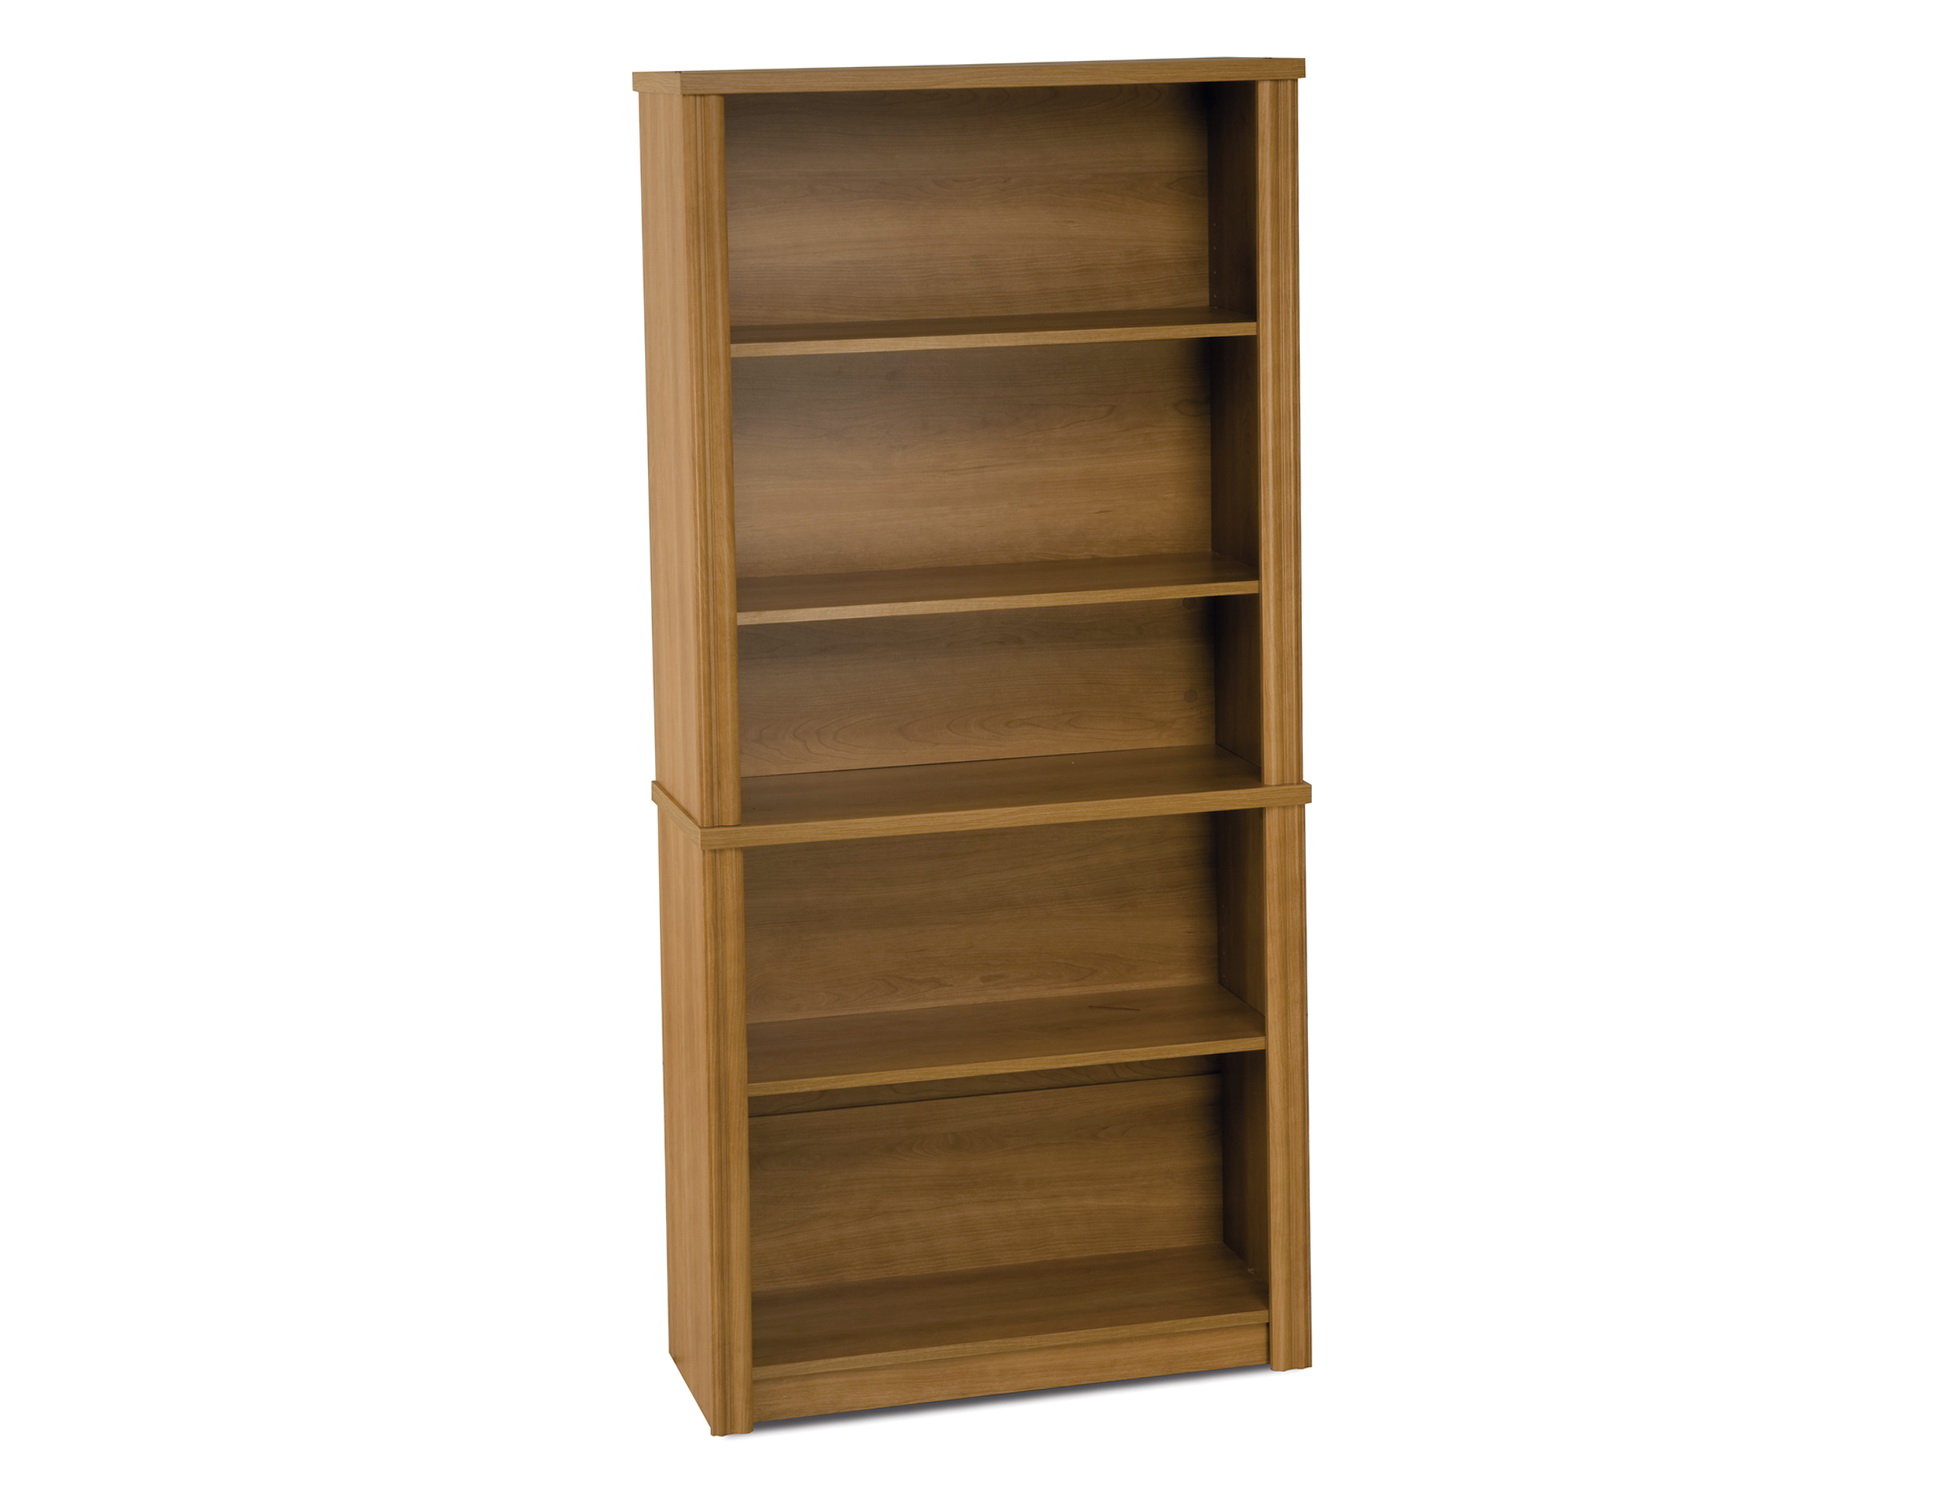 5 Shelf Bookcase Walmart